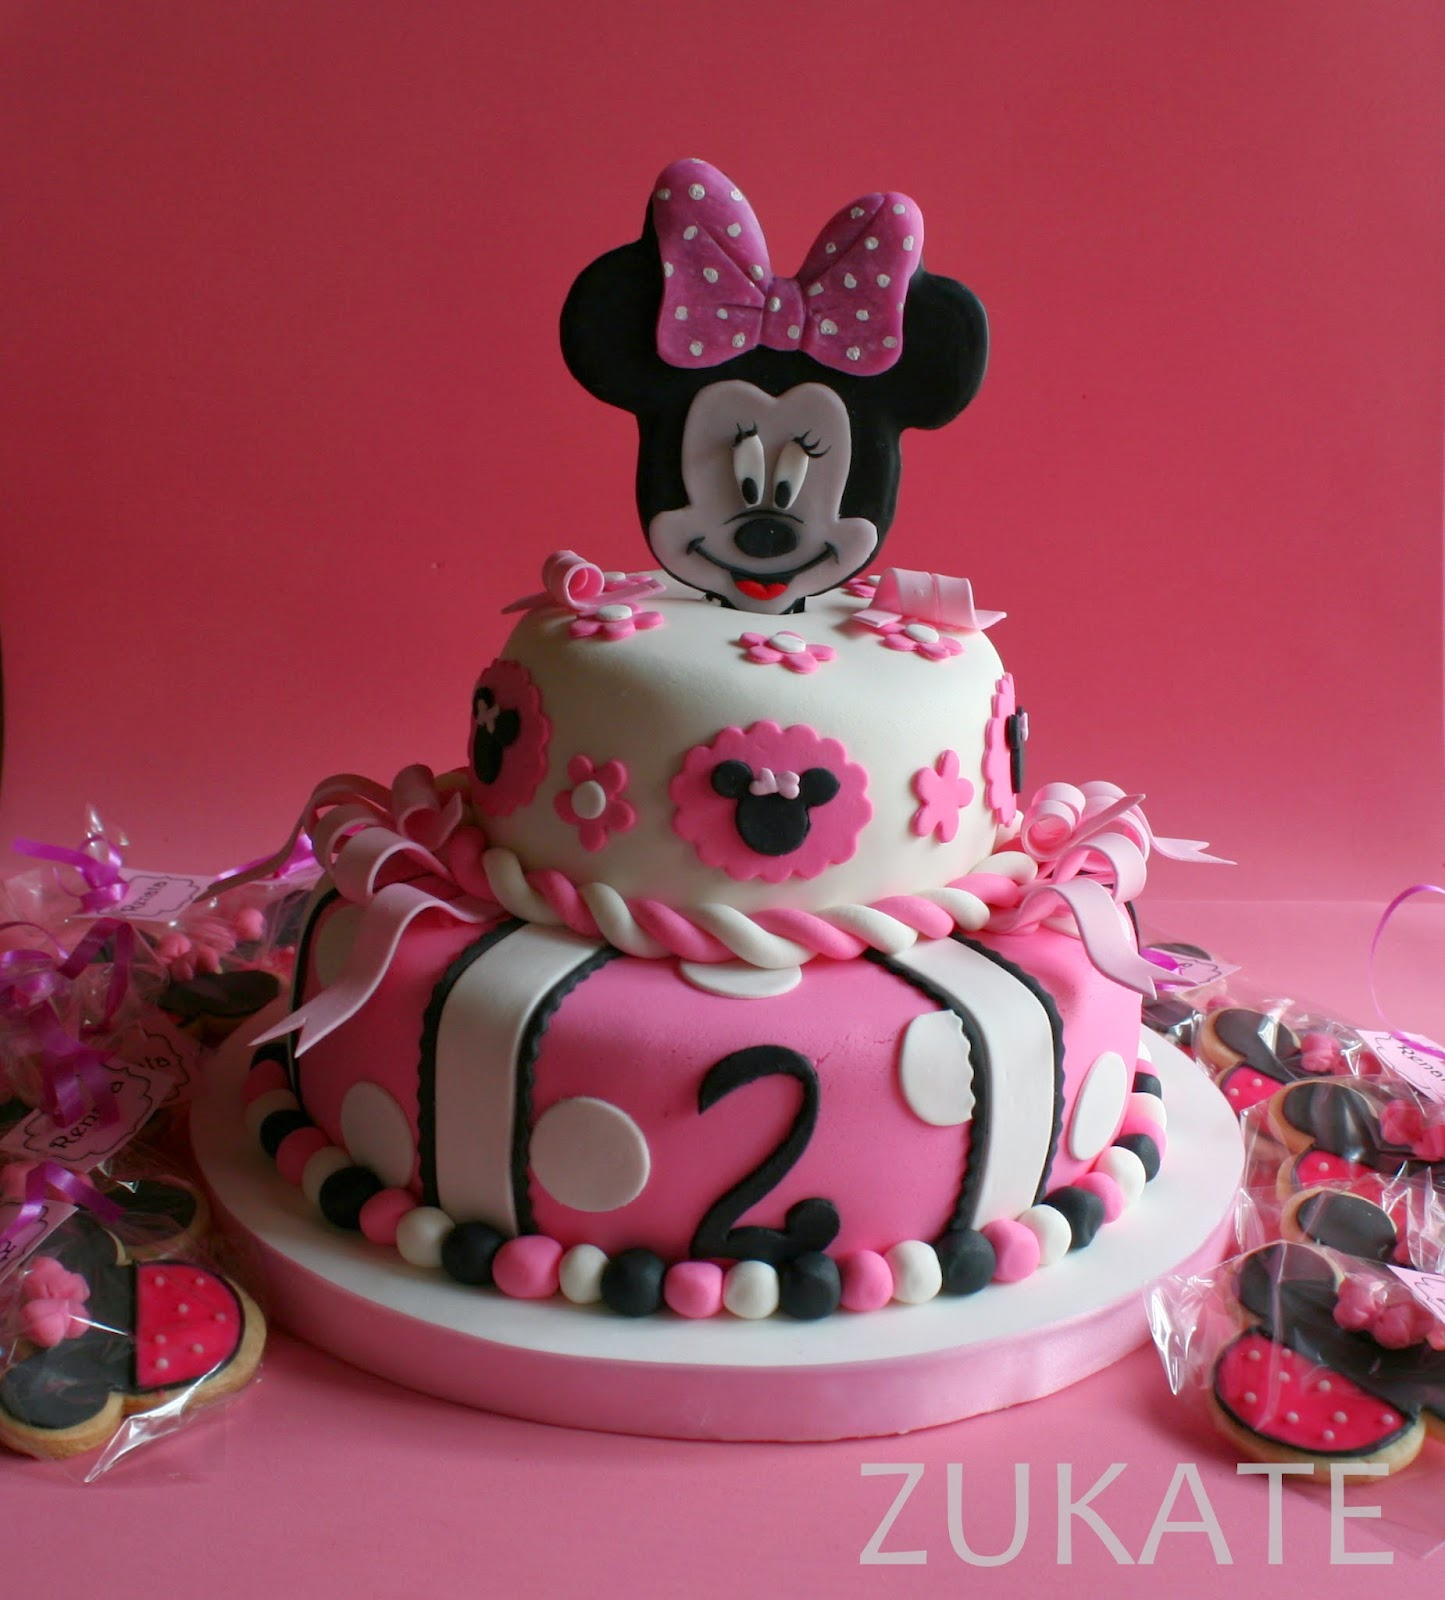 Tortas Decoradas Con Minnie Mouse Torta Y Galletitas De Minnie Mouse Para Renata | Zukate